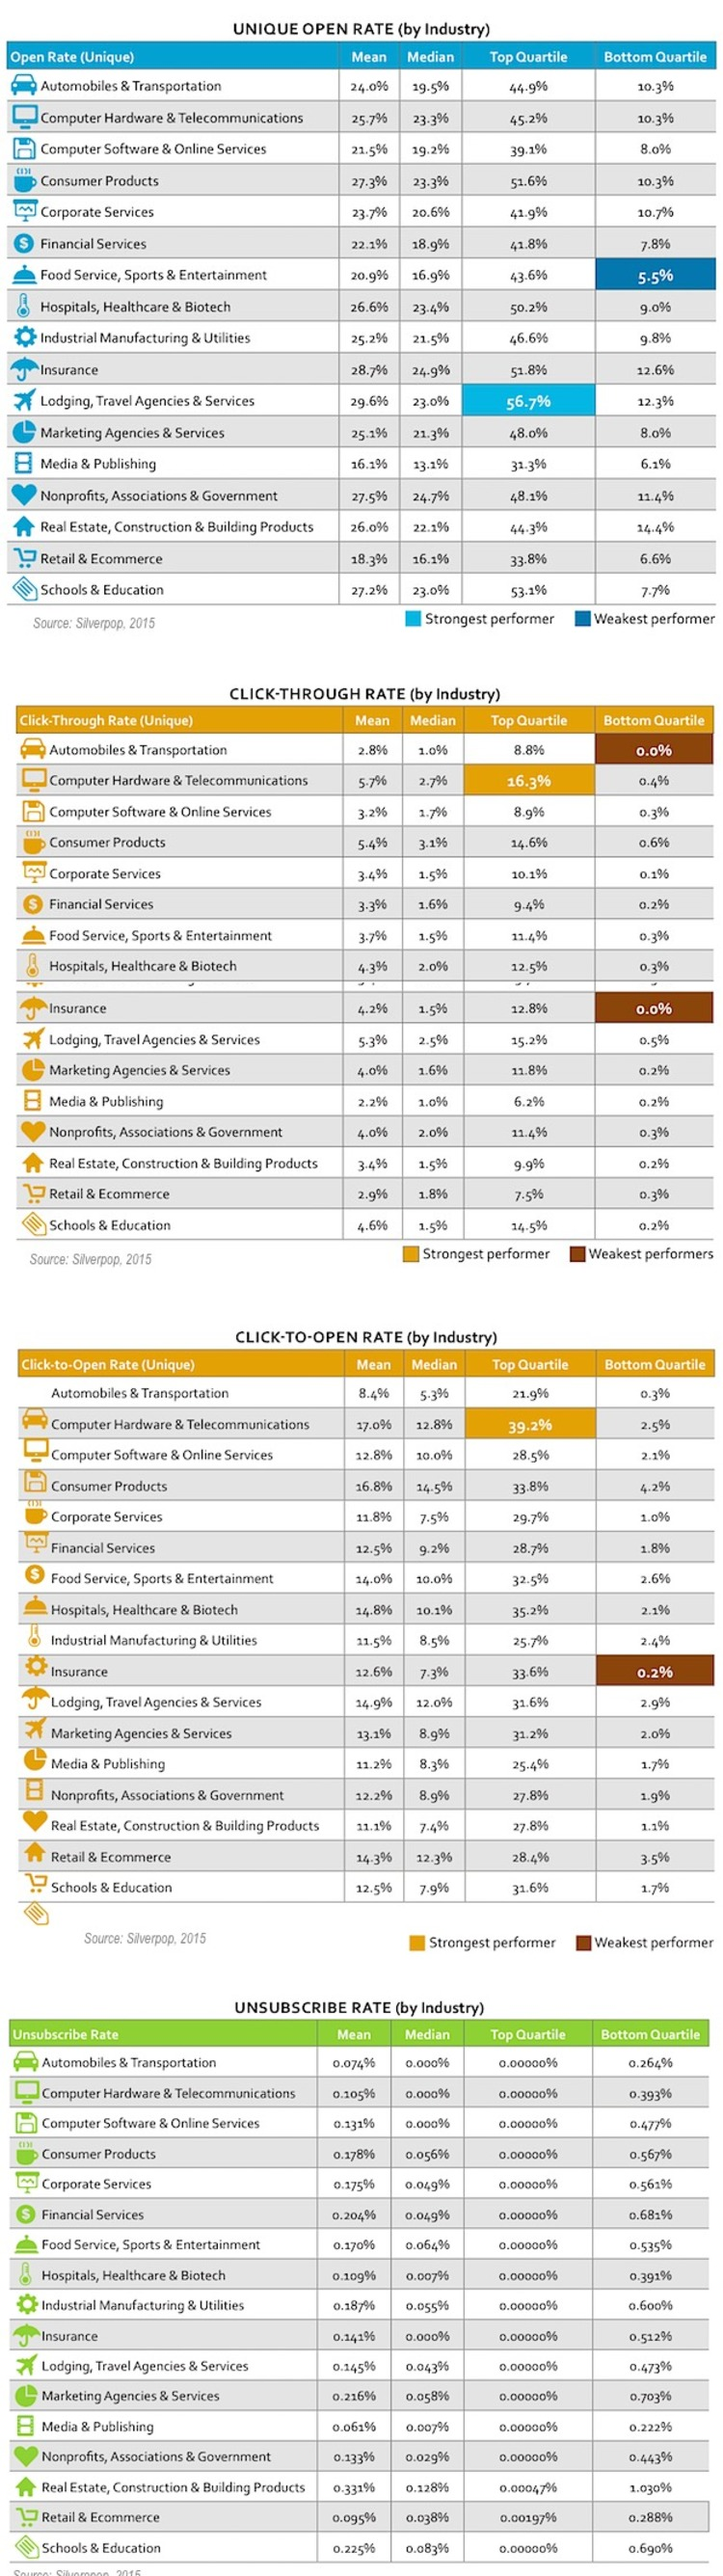 2015 Email Benchmarks by Industry - Profs | The Marketing Technology Alert | Scoop.it